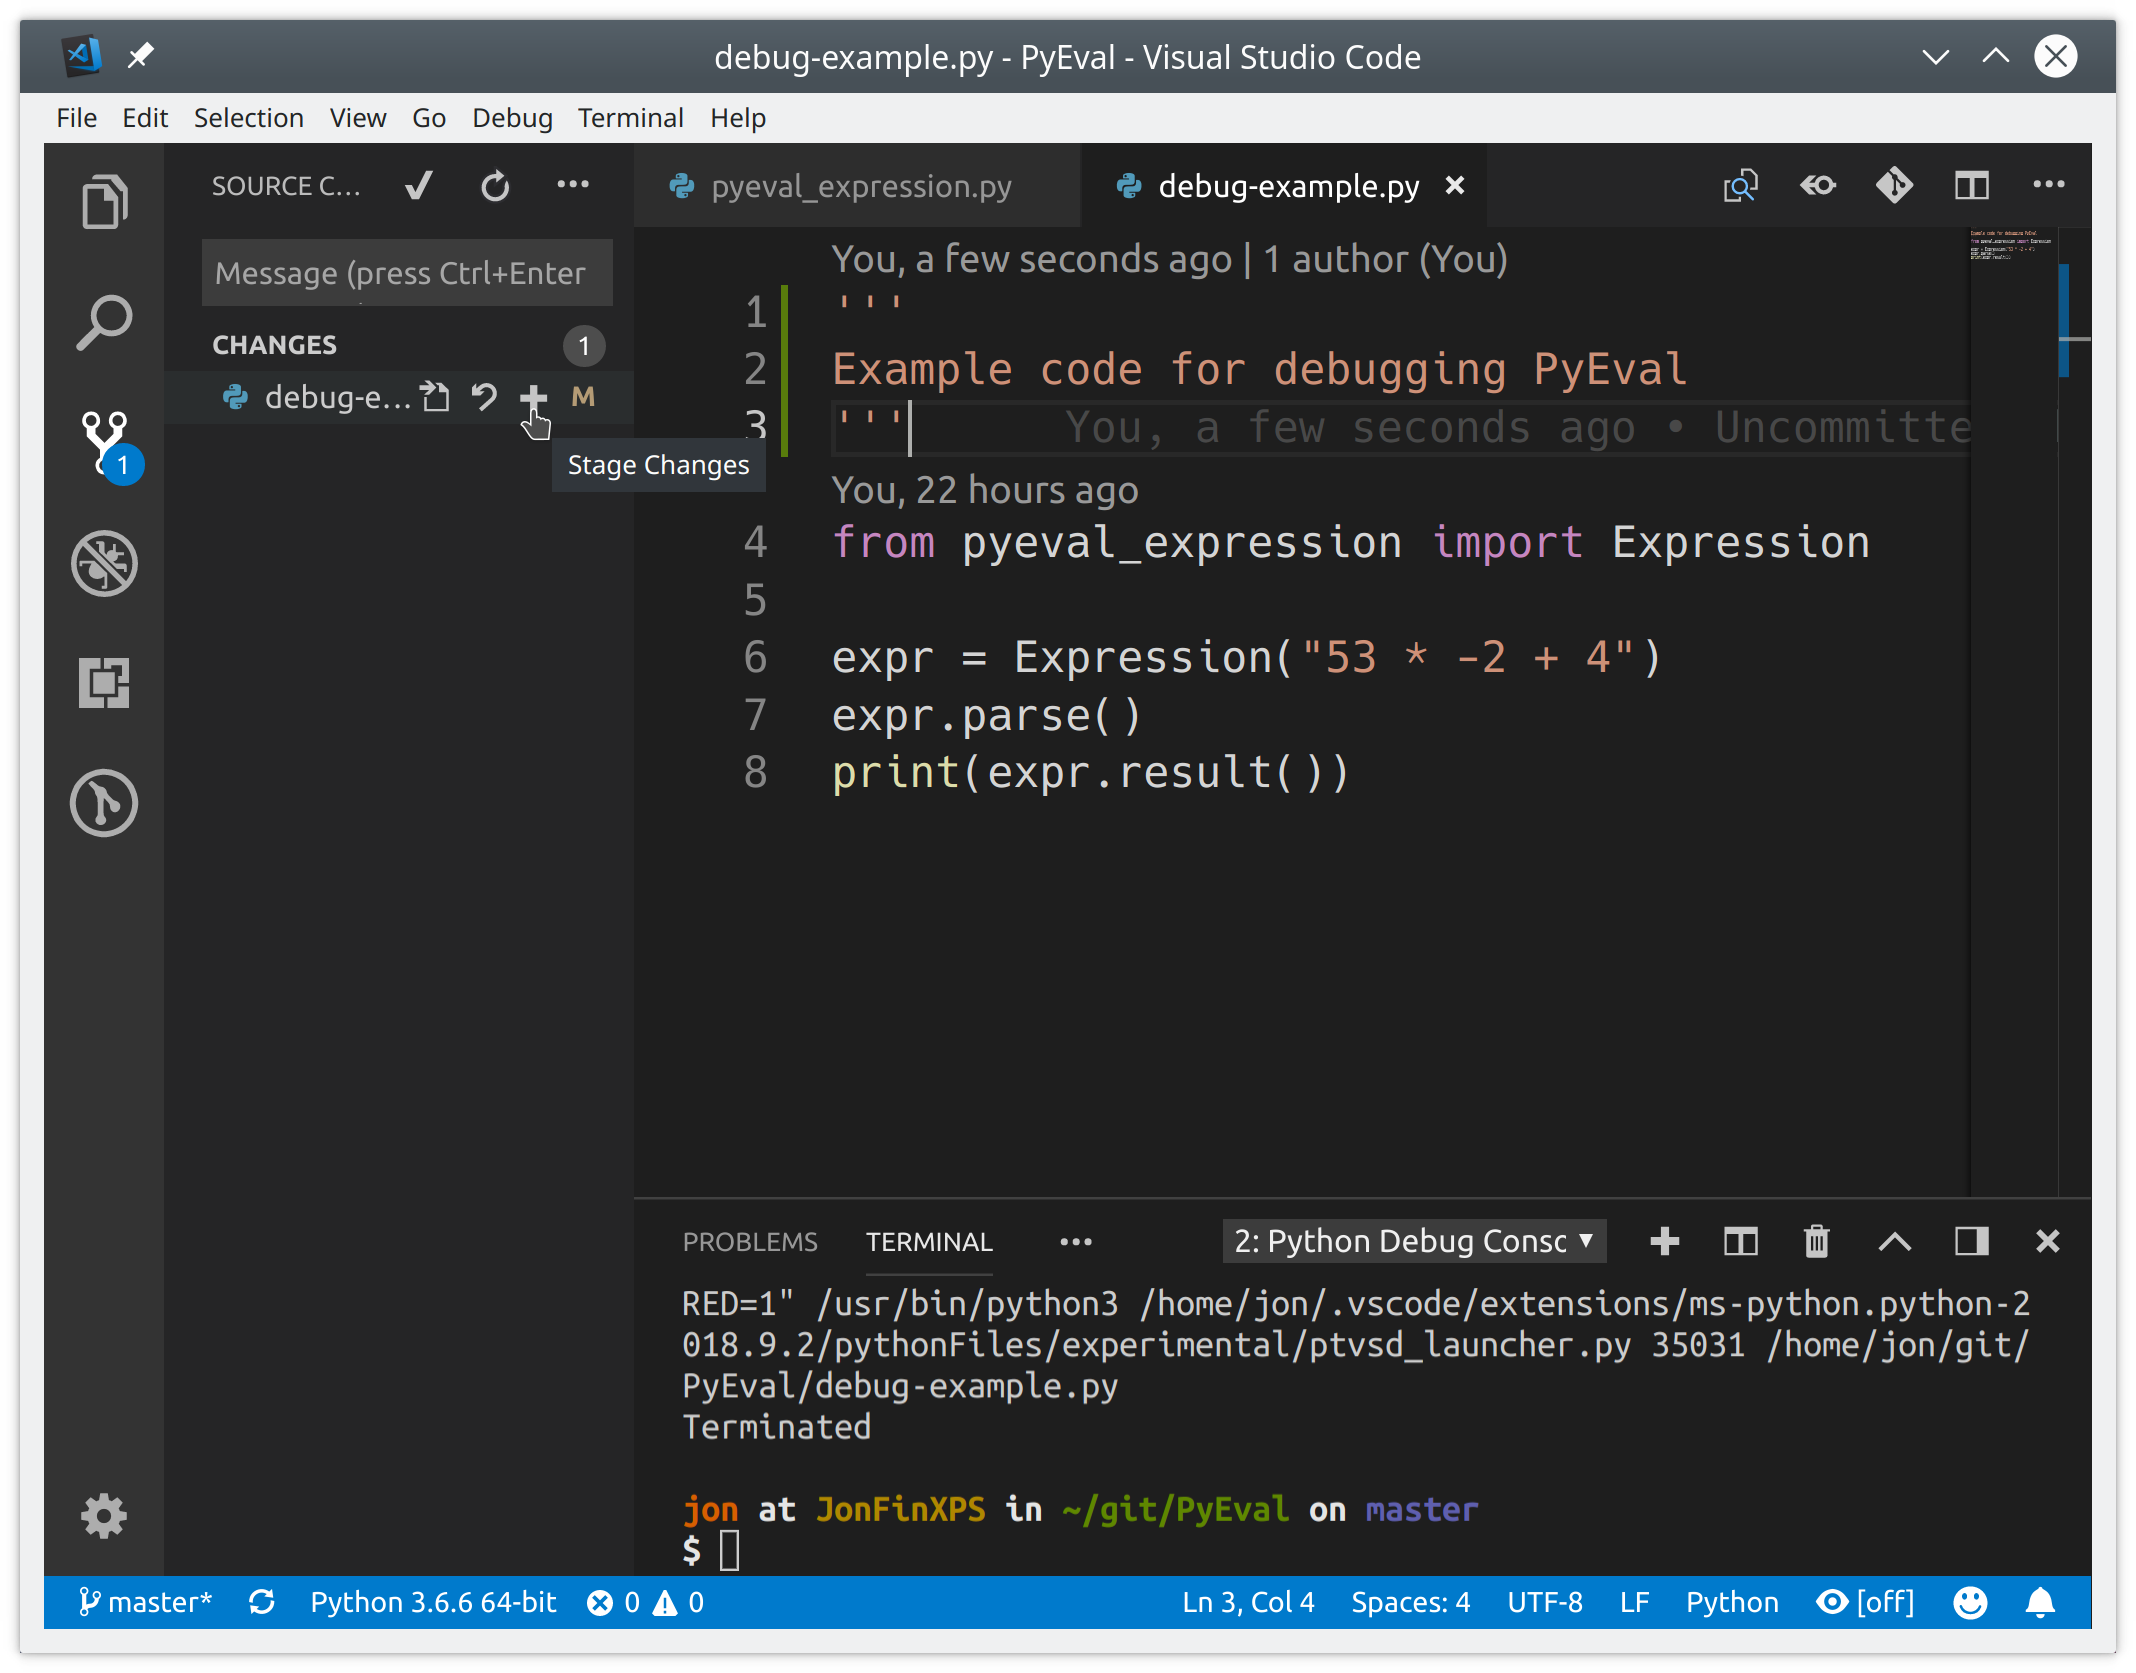 Committing changes in VSCode